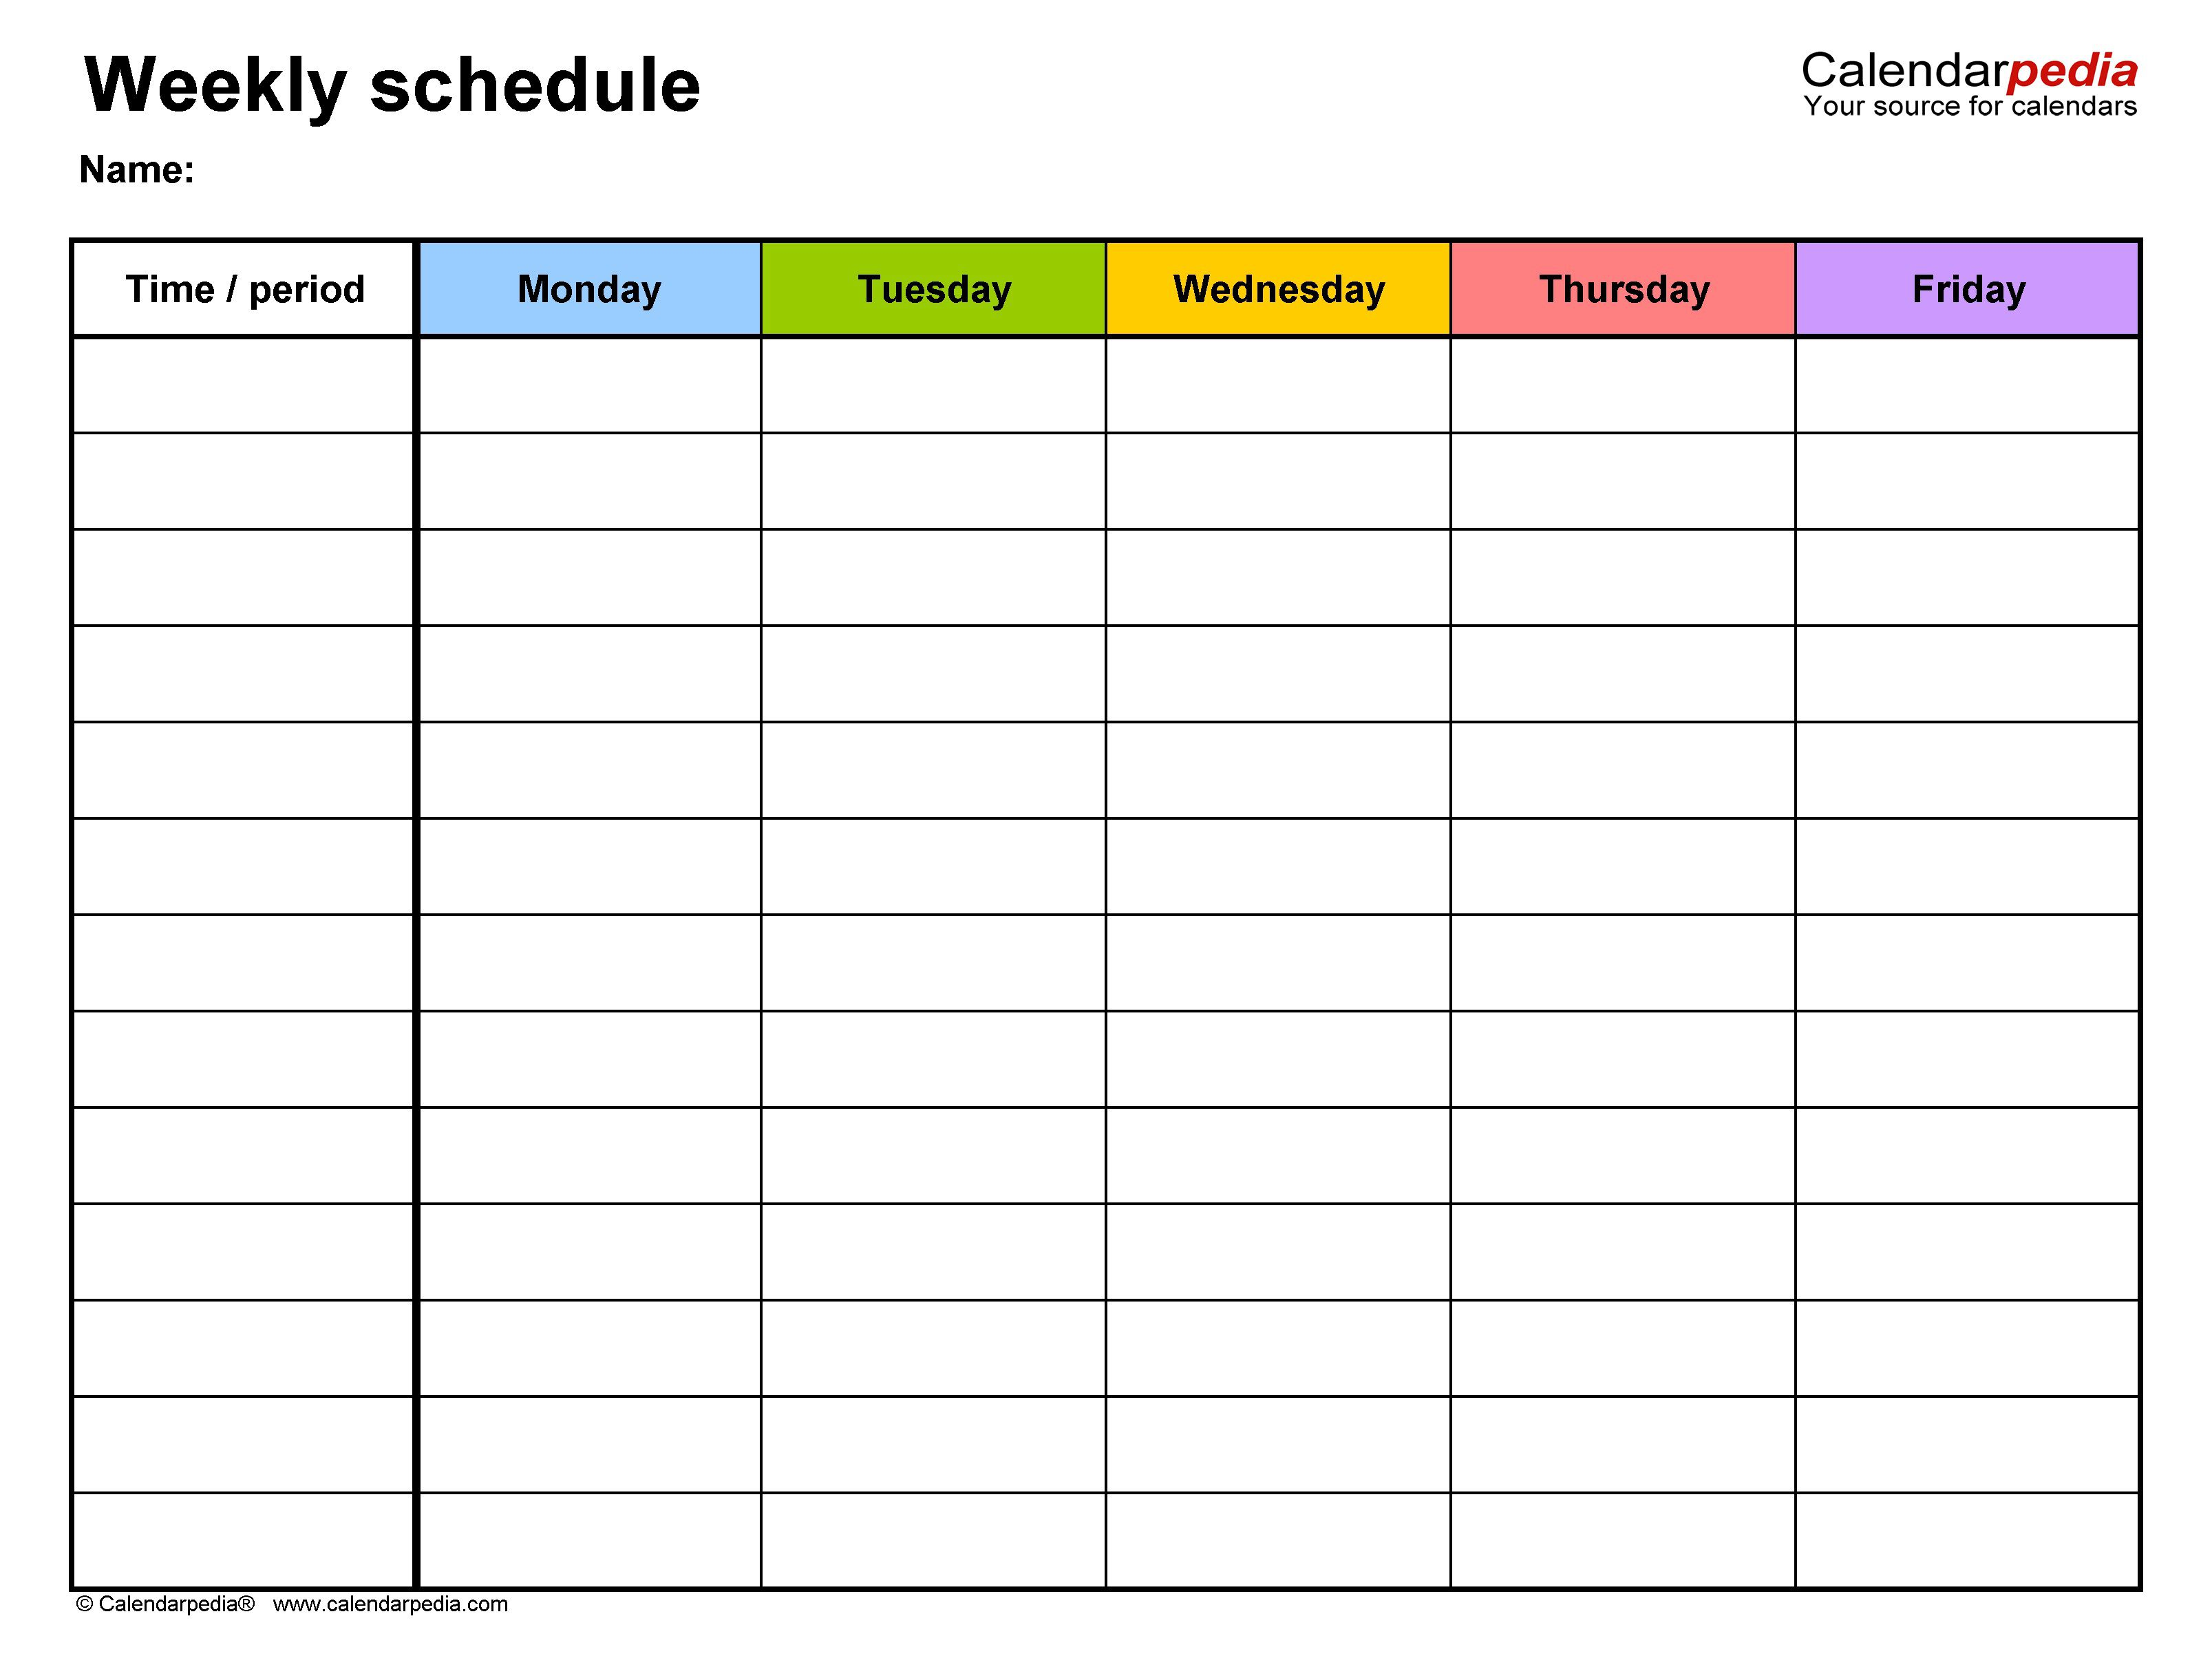 007 Top Weekly Hourly Schedule Template Picture  Free Calendar Word PdfFull